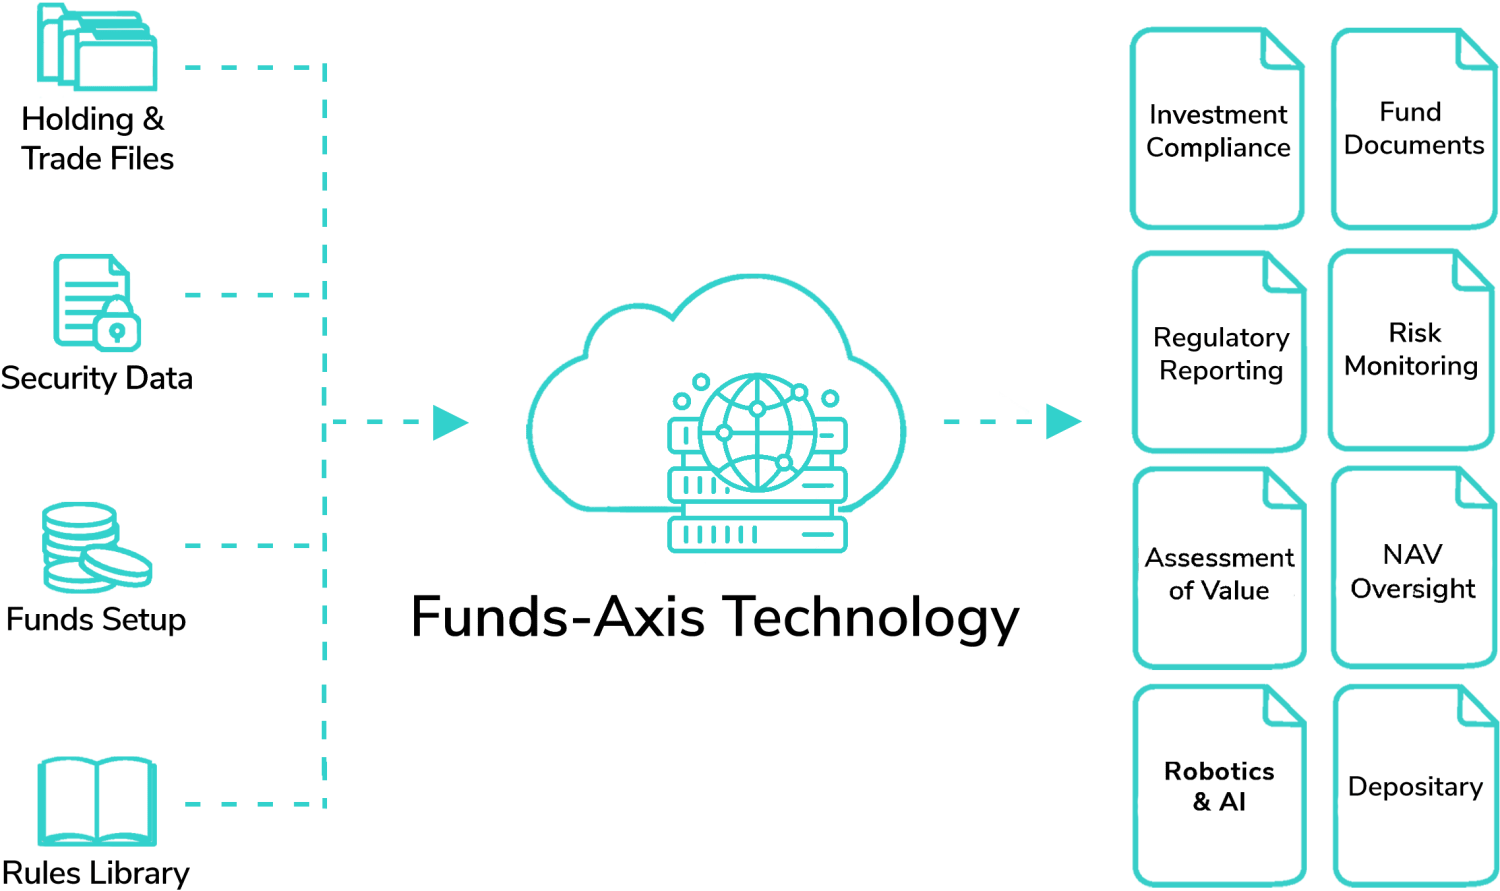 Funds-Axis Global Funds Technology